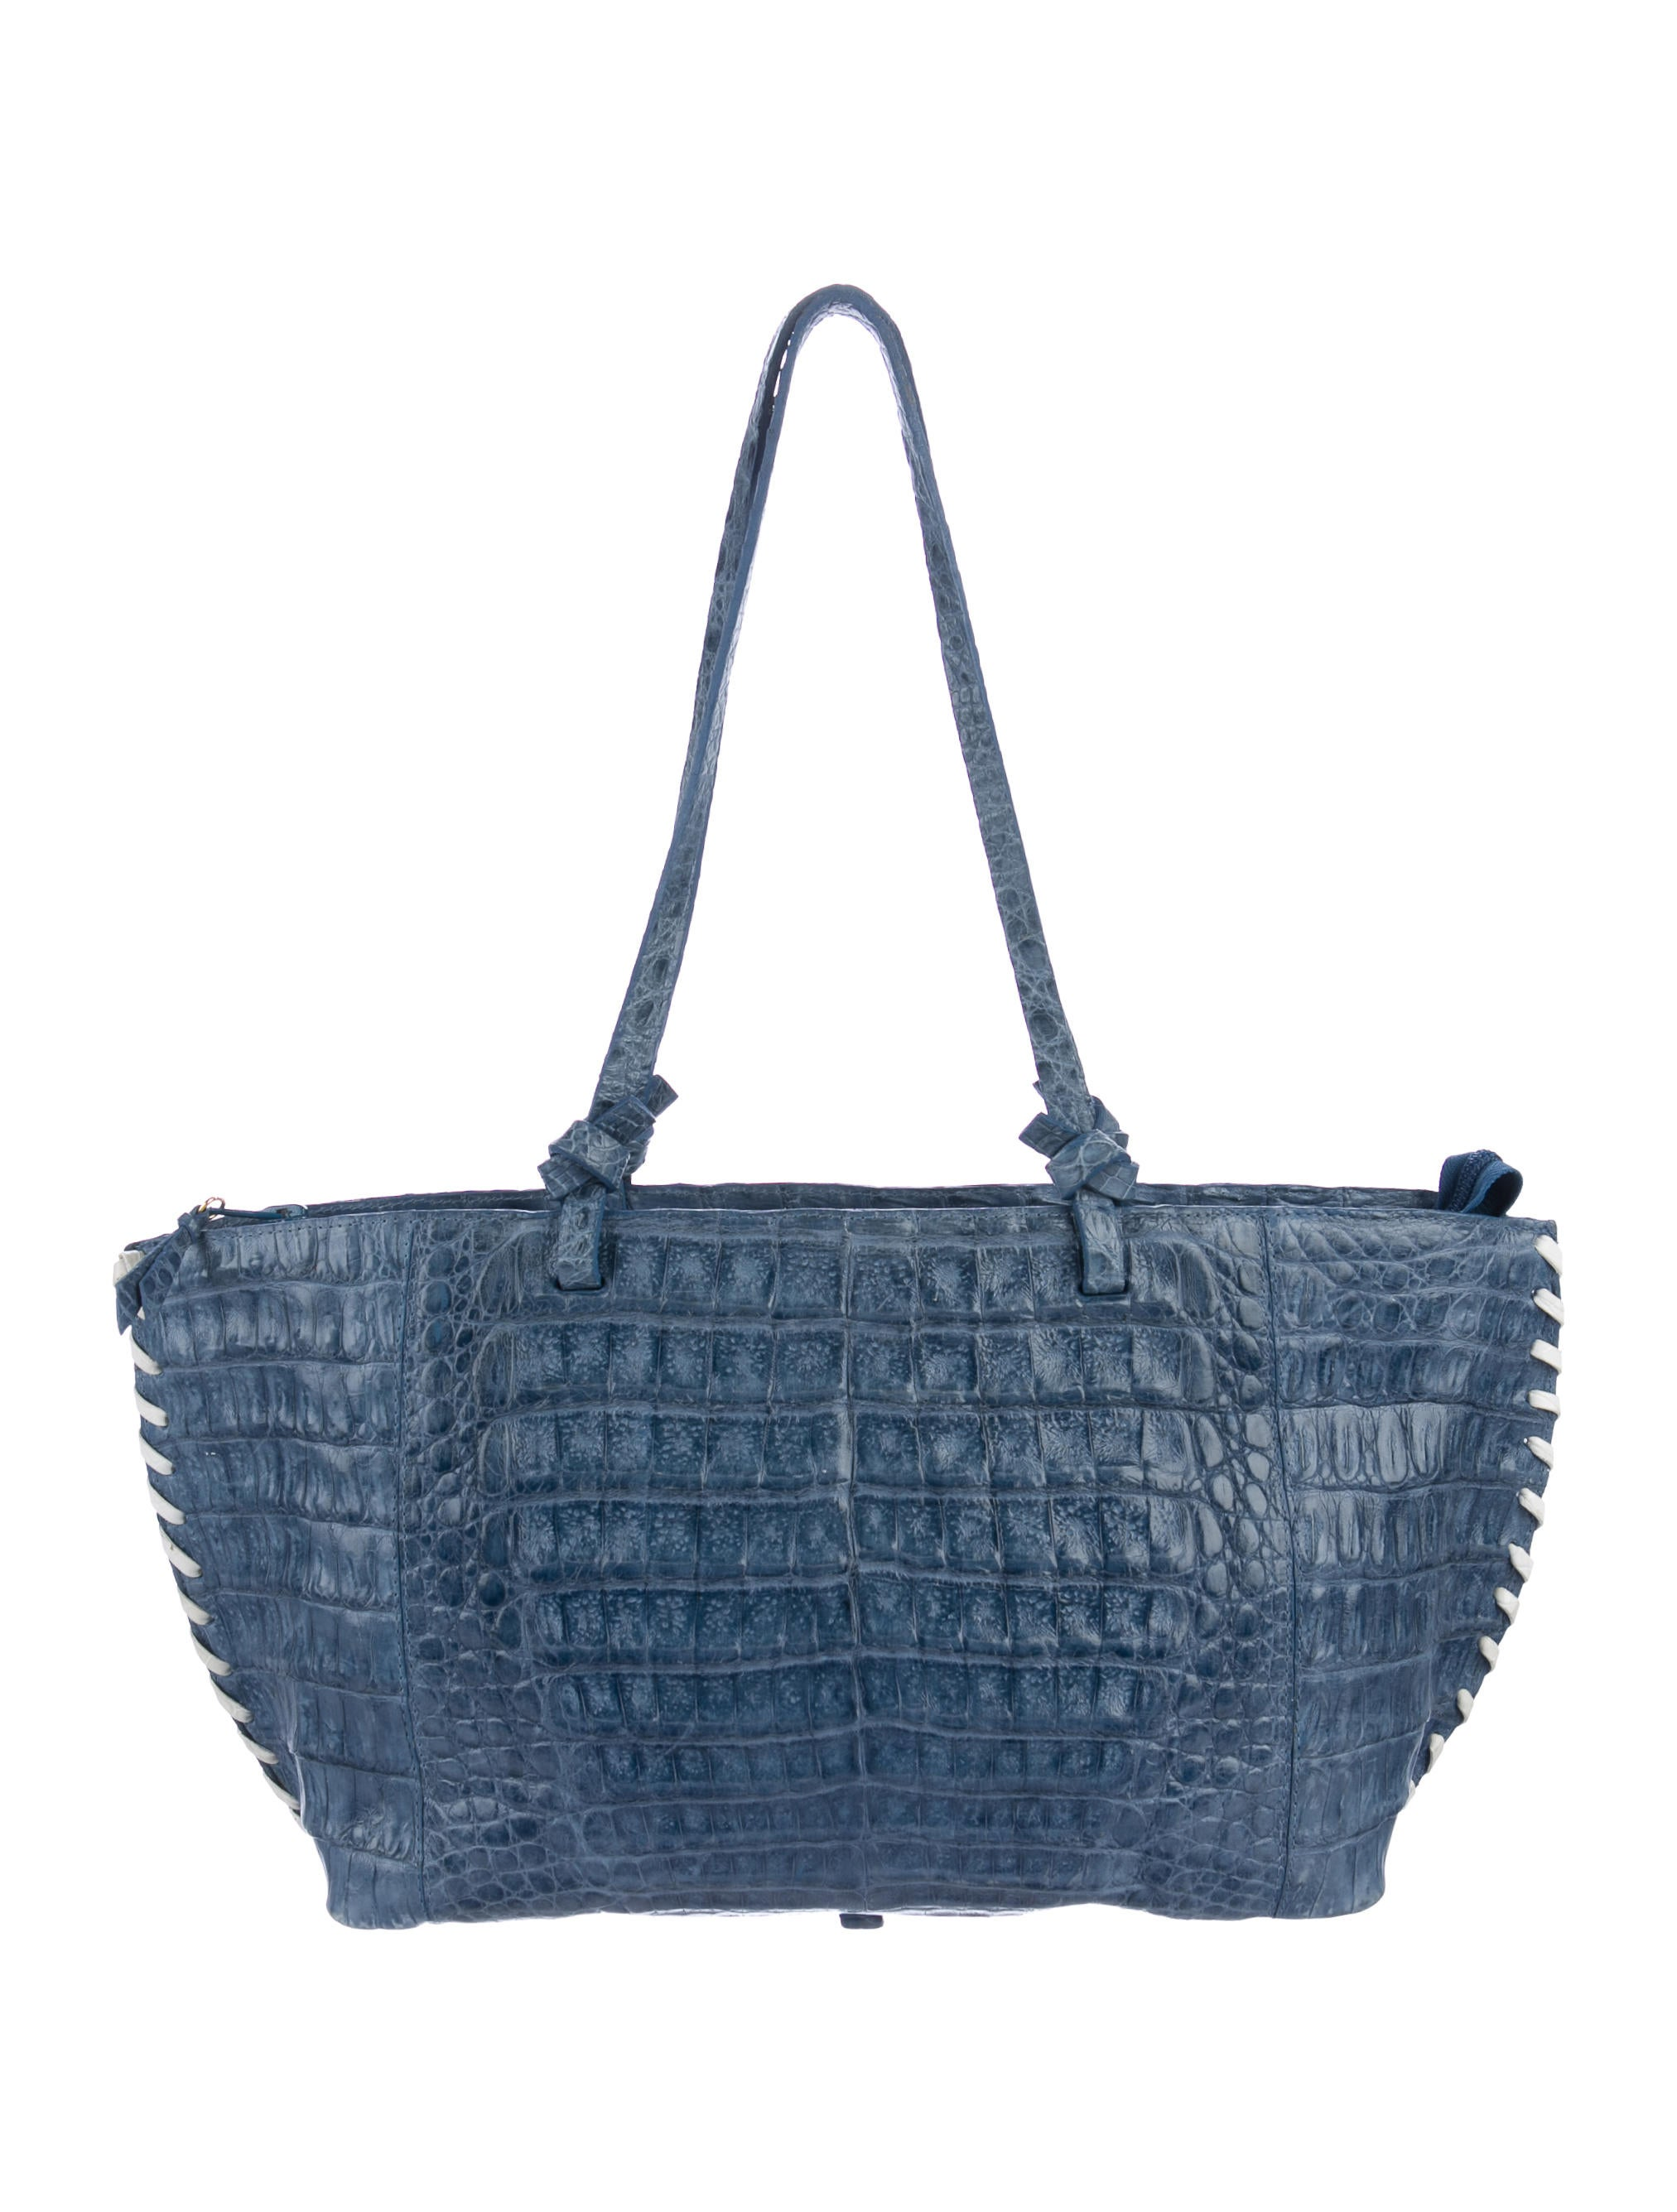 Nancy gonzalez crocodile whipstitch tote handbags for Nancy gonzalez crocodile tote